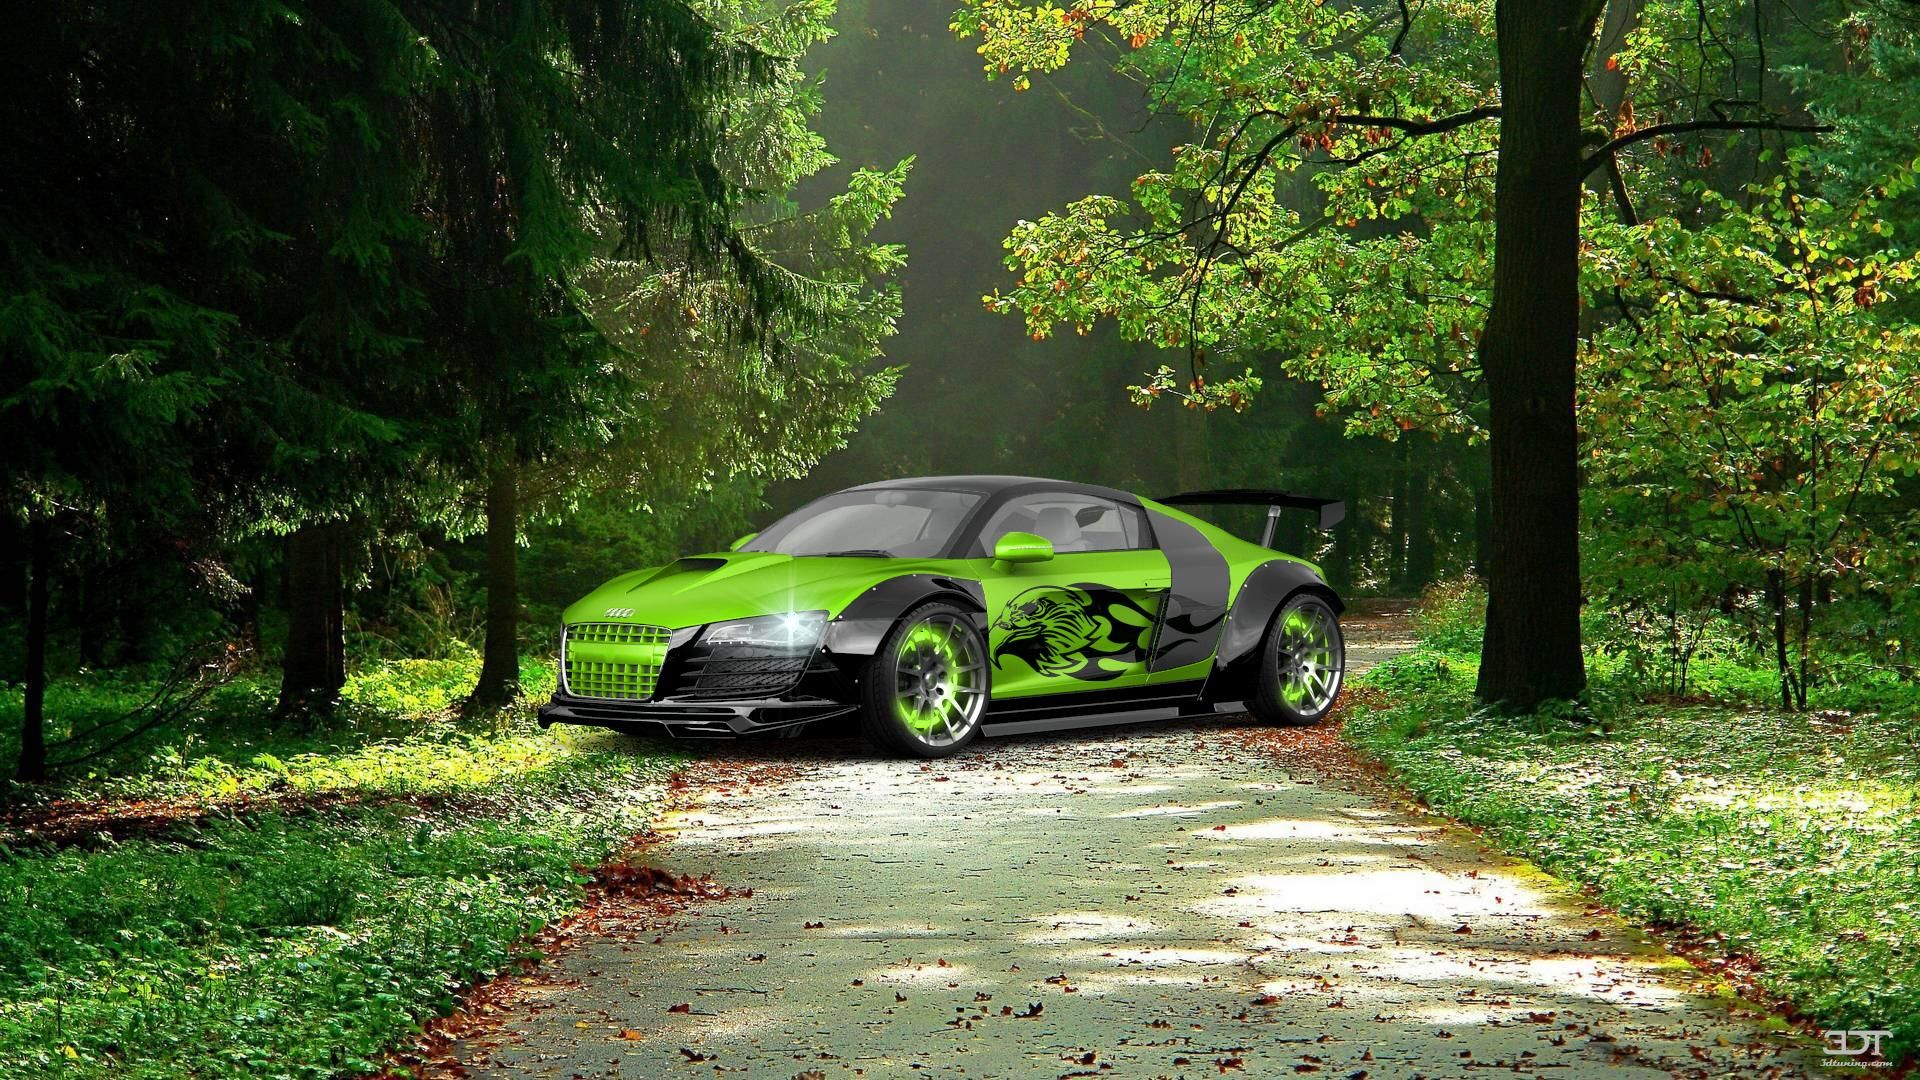 Checkout my tuning audi r8 2107 at 3dtuning 3dtuning tuning